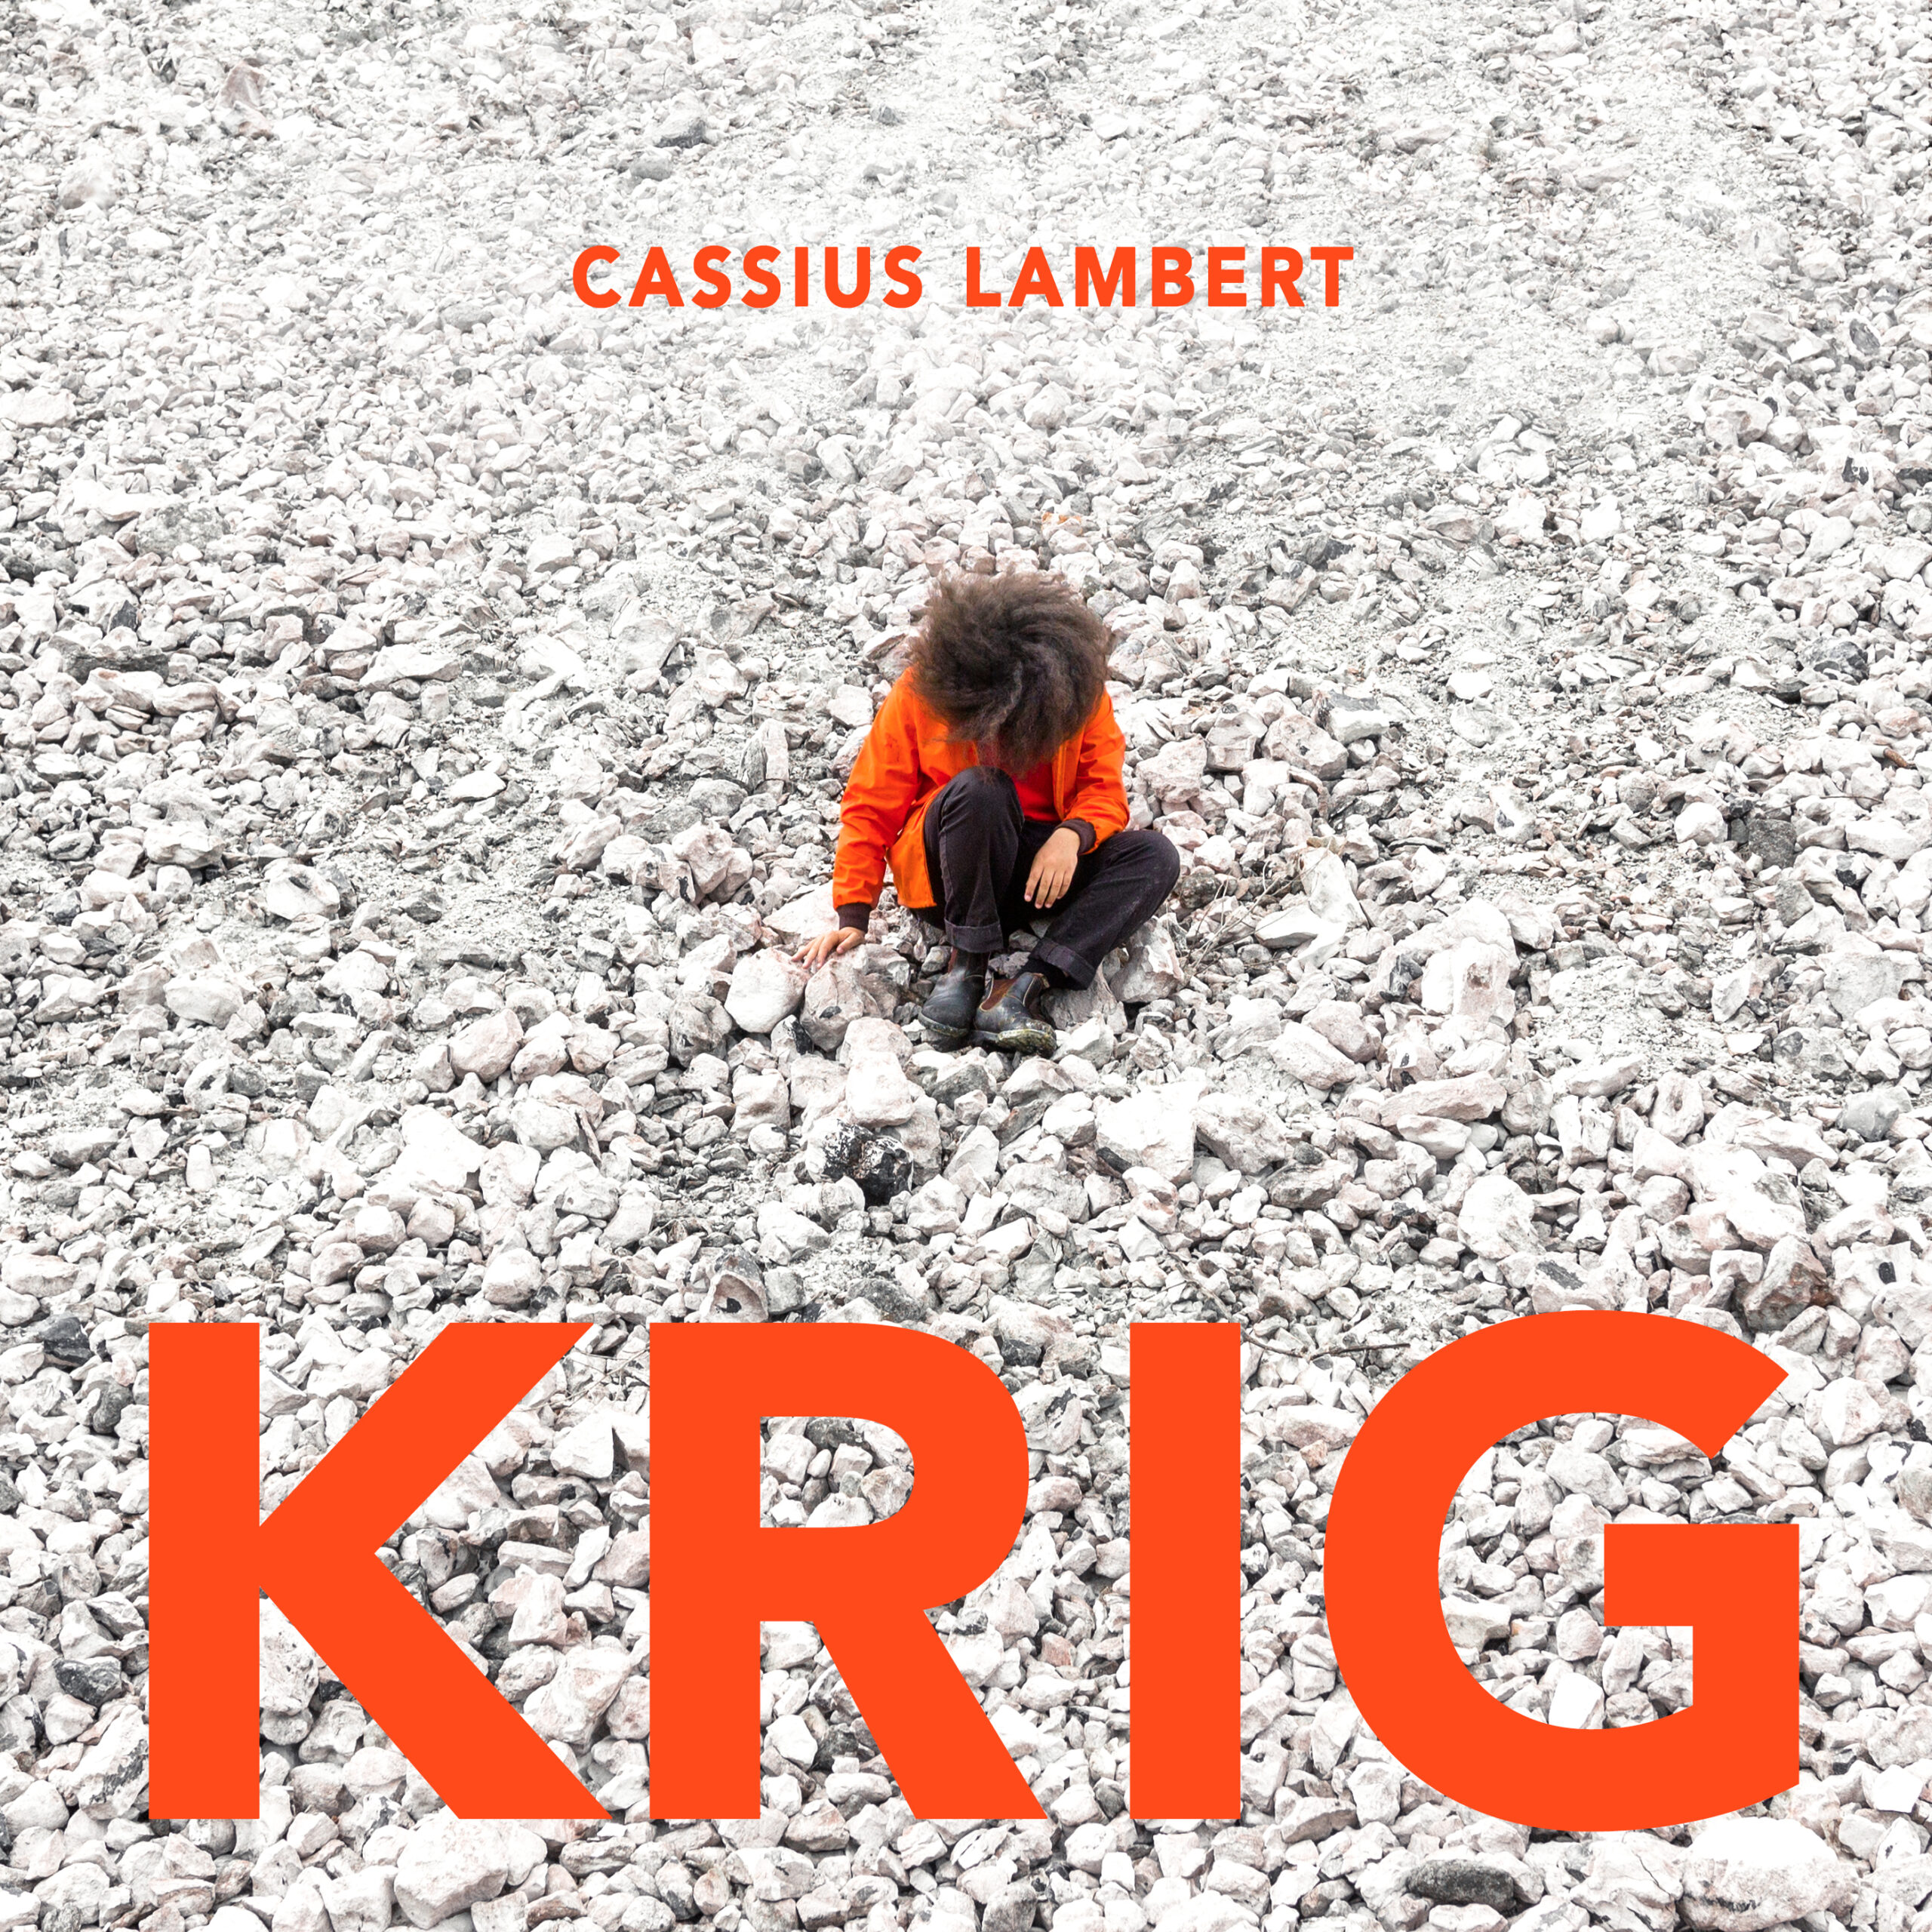 Cassius lamberts is sitting on white rocks. The name of the single is Krig.